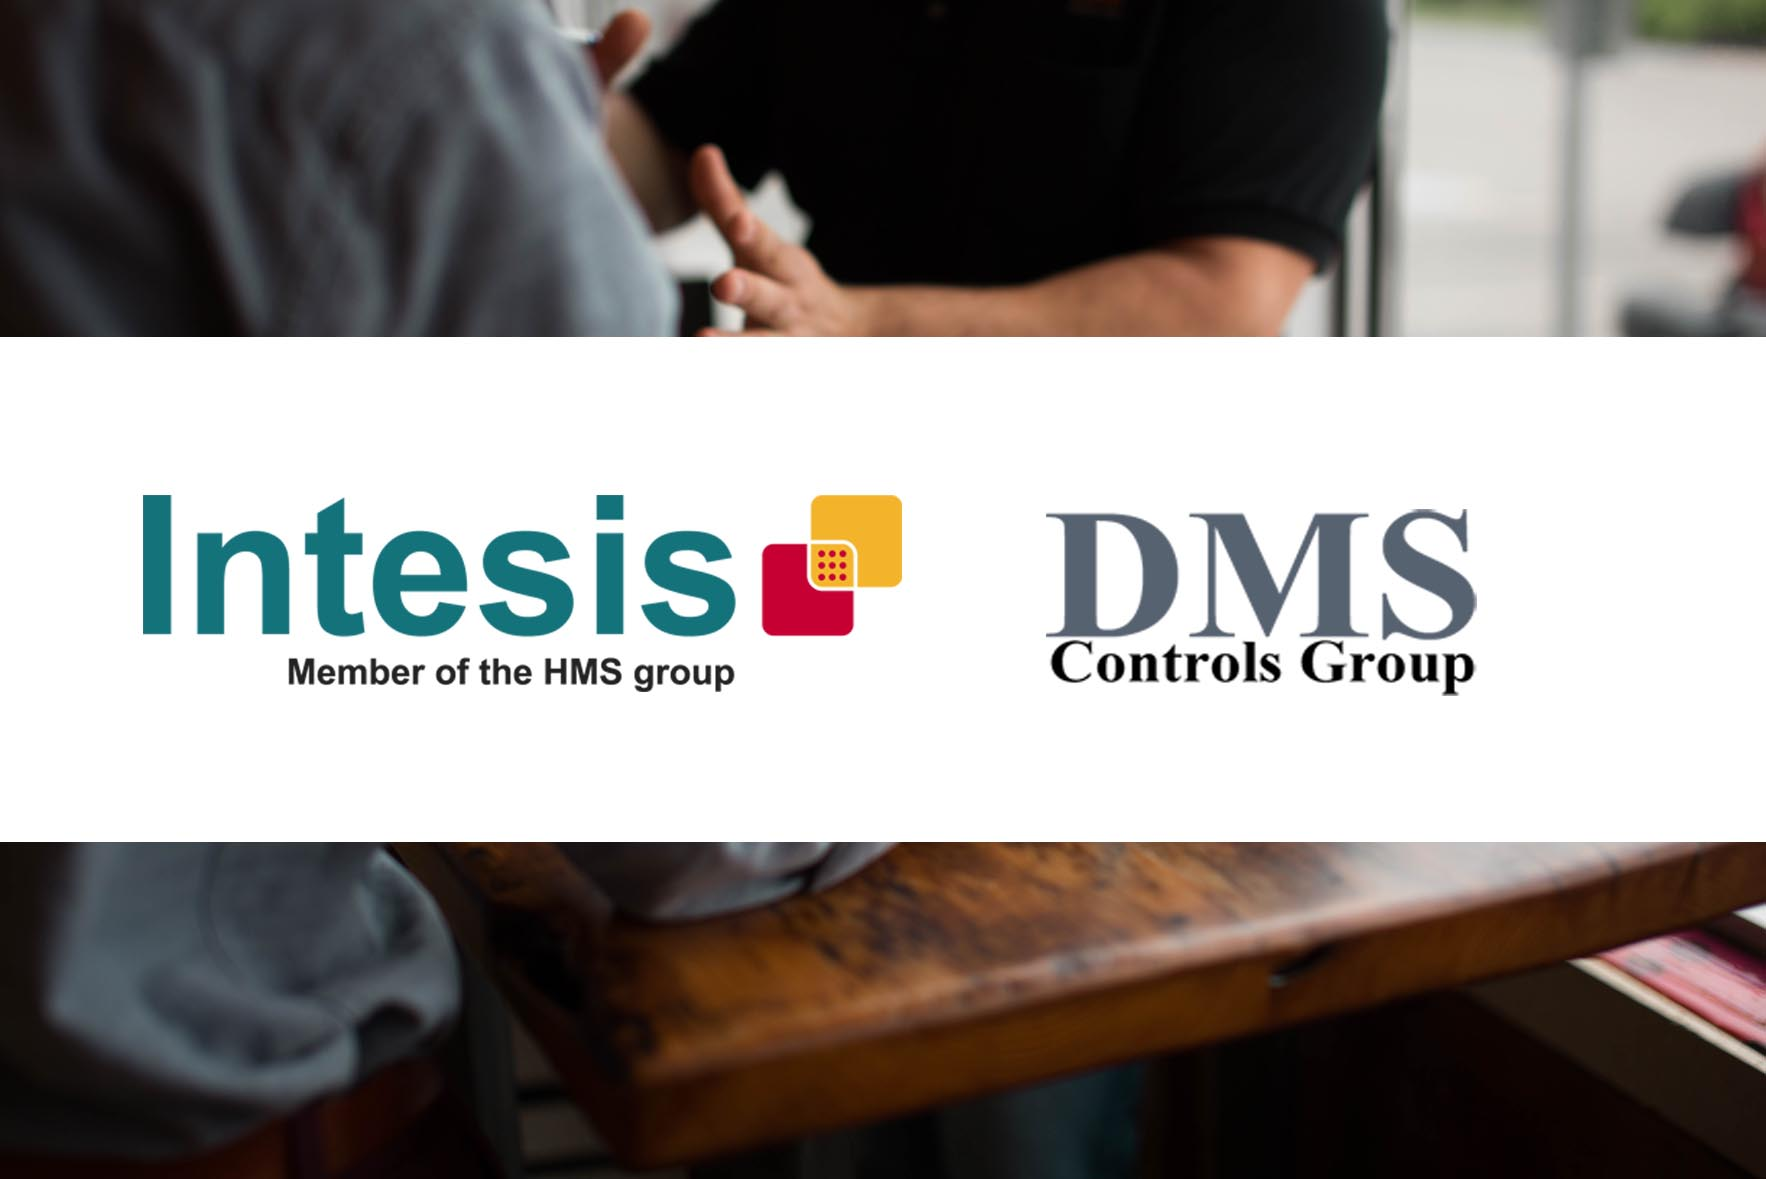 intesis-software-announces-an-exciting-new-partnership-with-dms-controls-group